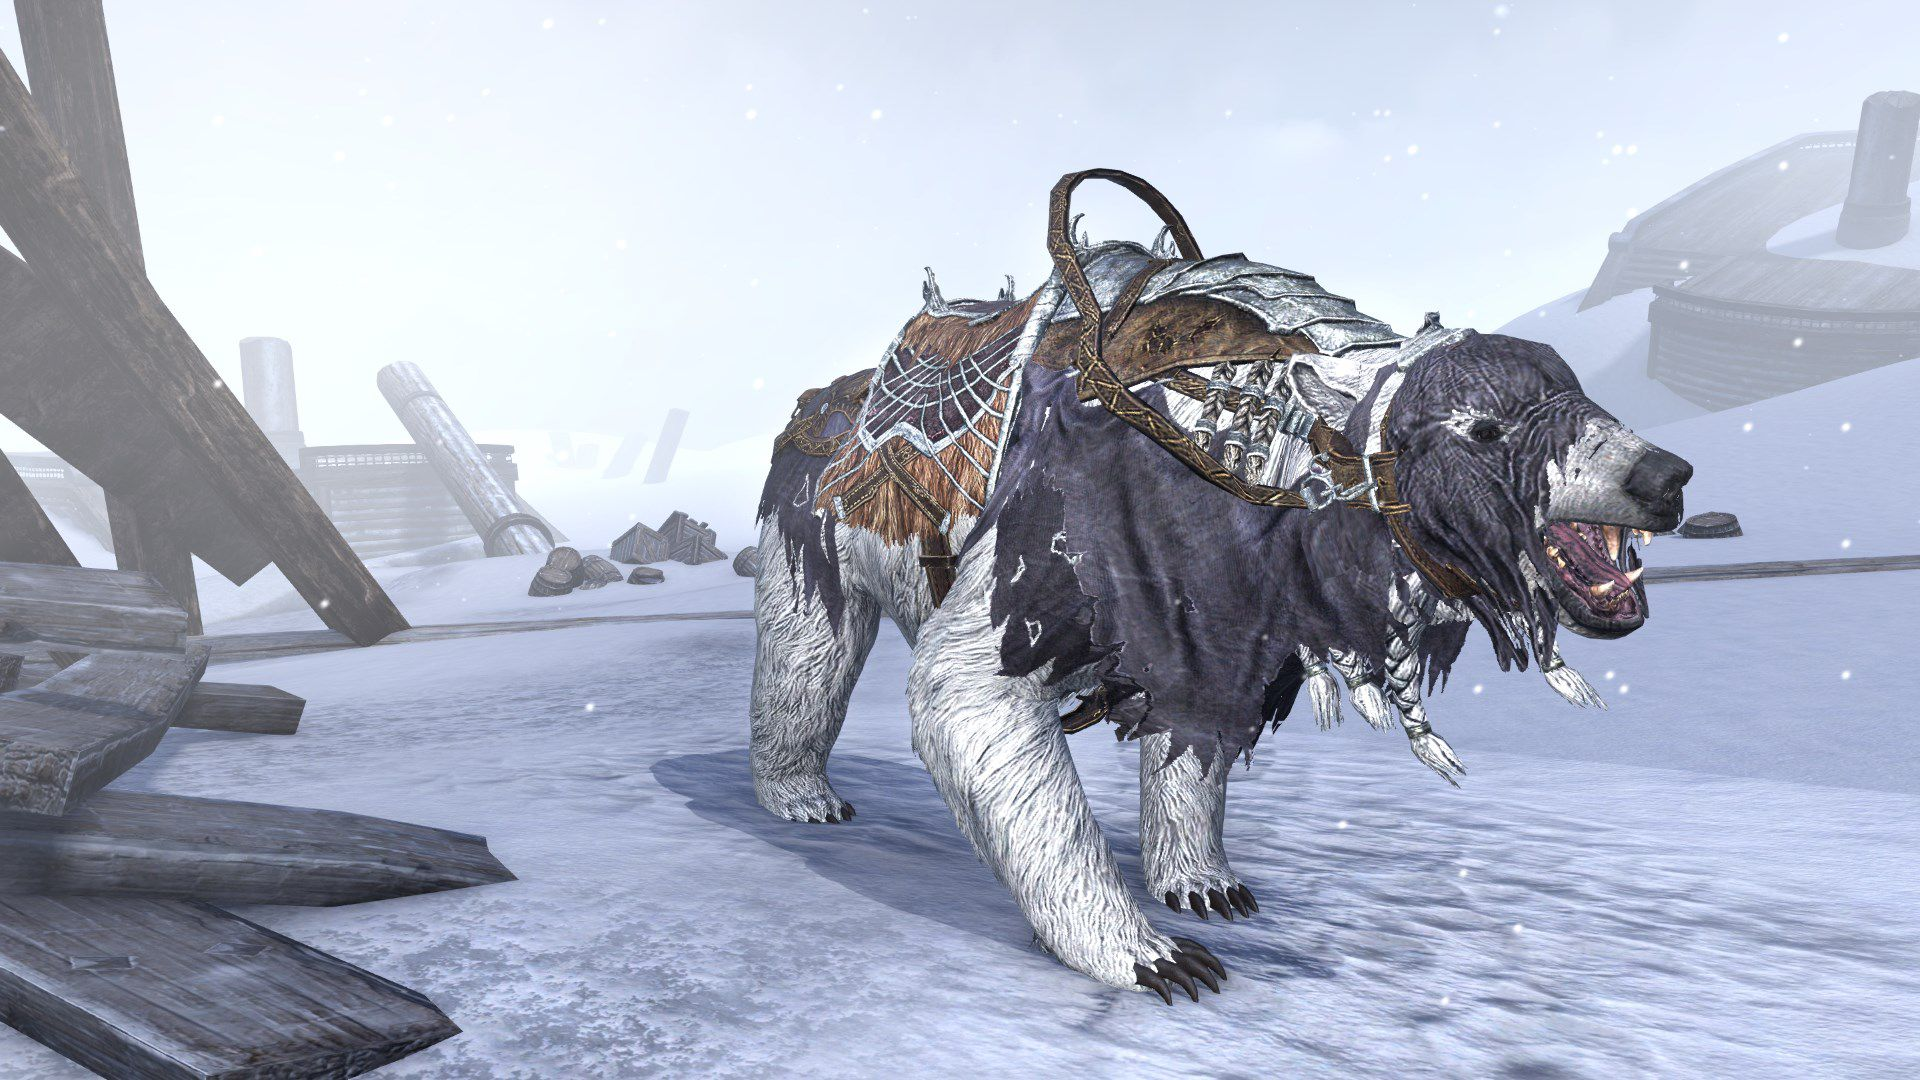 Frostbane Bear, Apex Mount, Scalecaller Crown Crate (image by Zenimax Online)